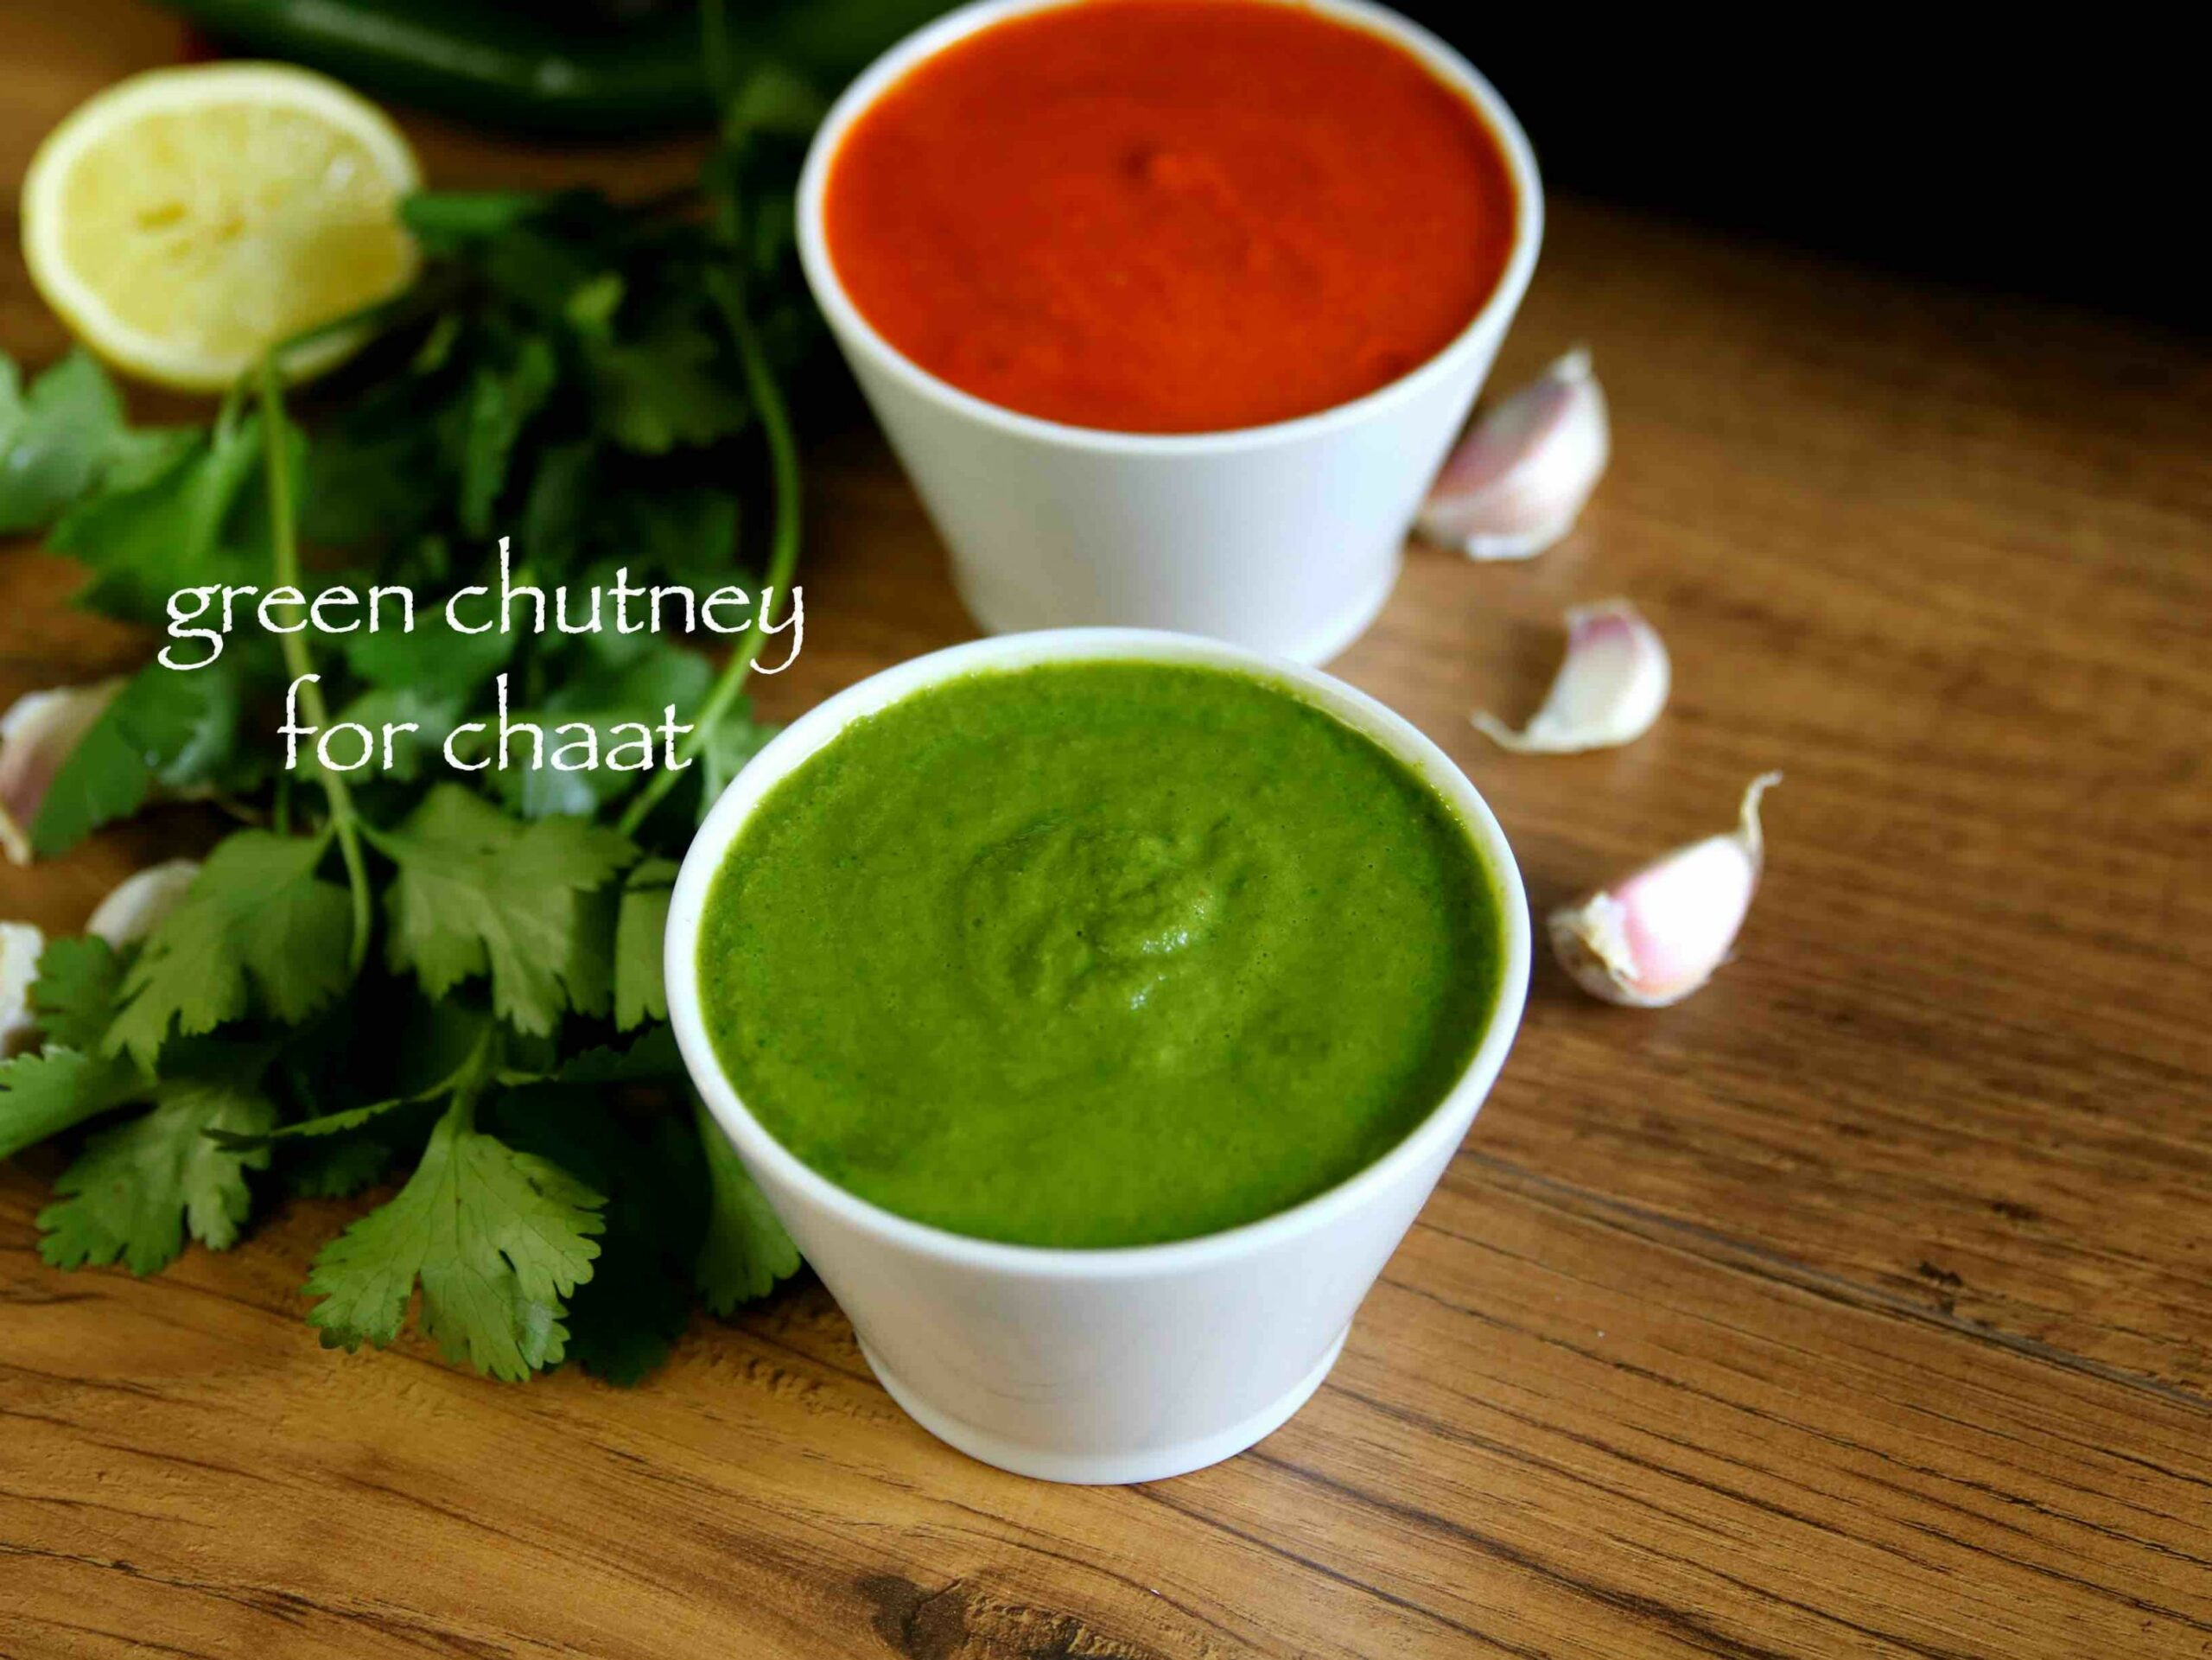 green chutney recipe | hari chutney | green chutney for chaat - Sandwich Recipes Chutney